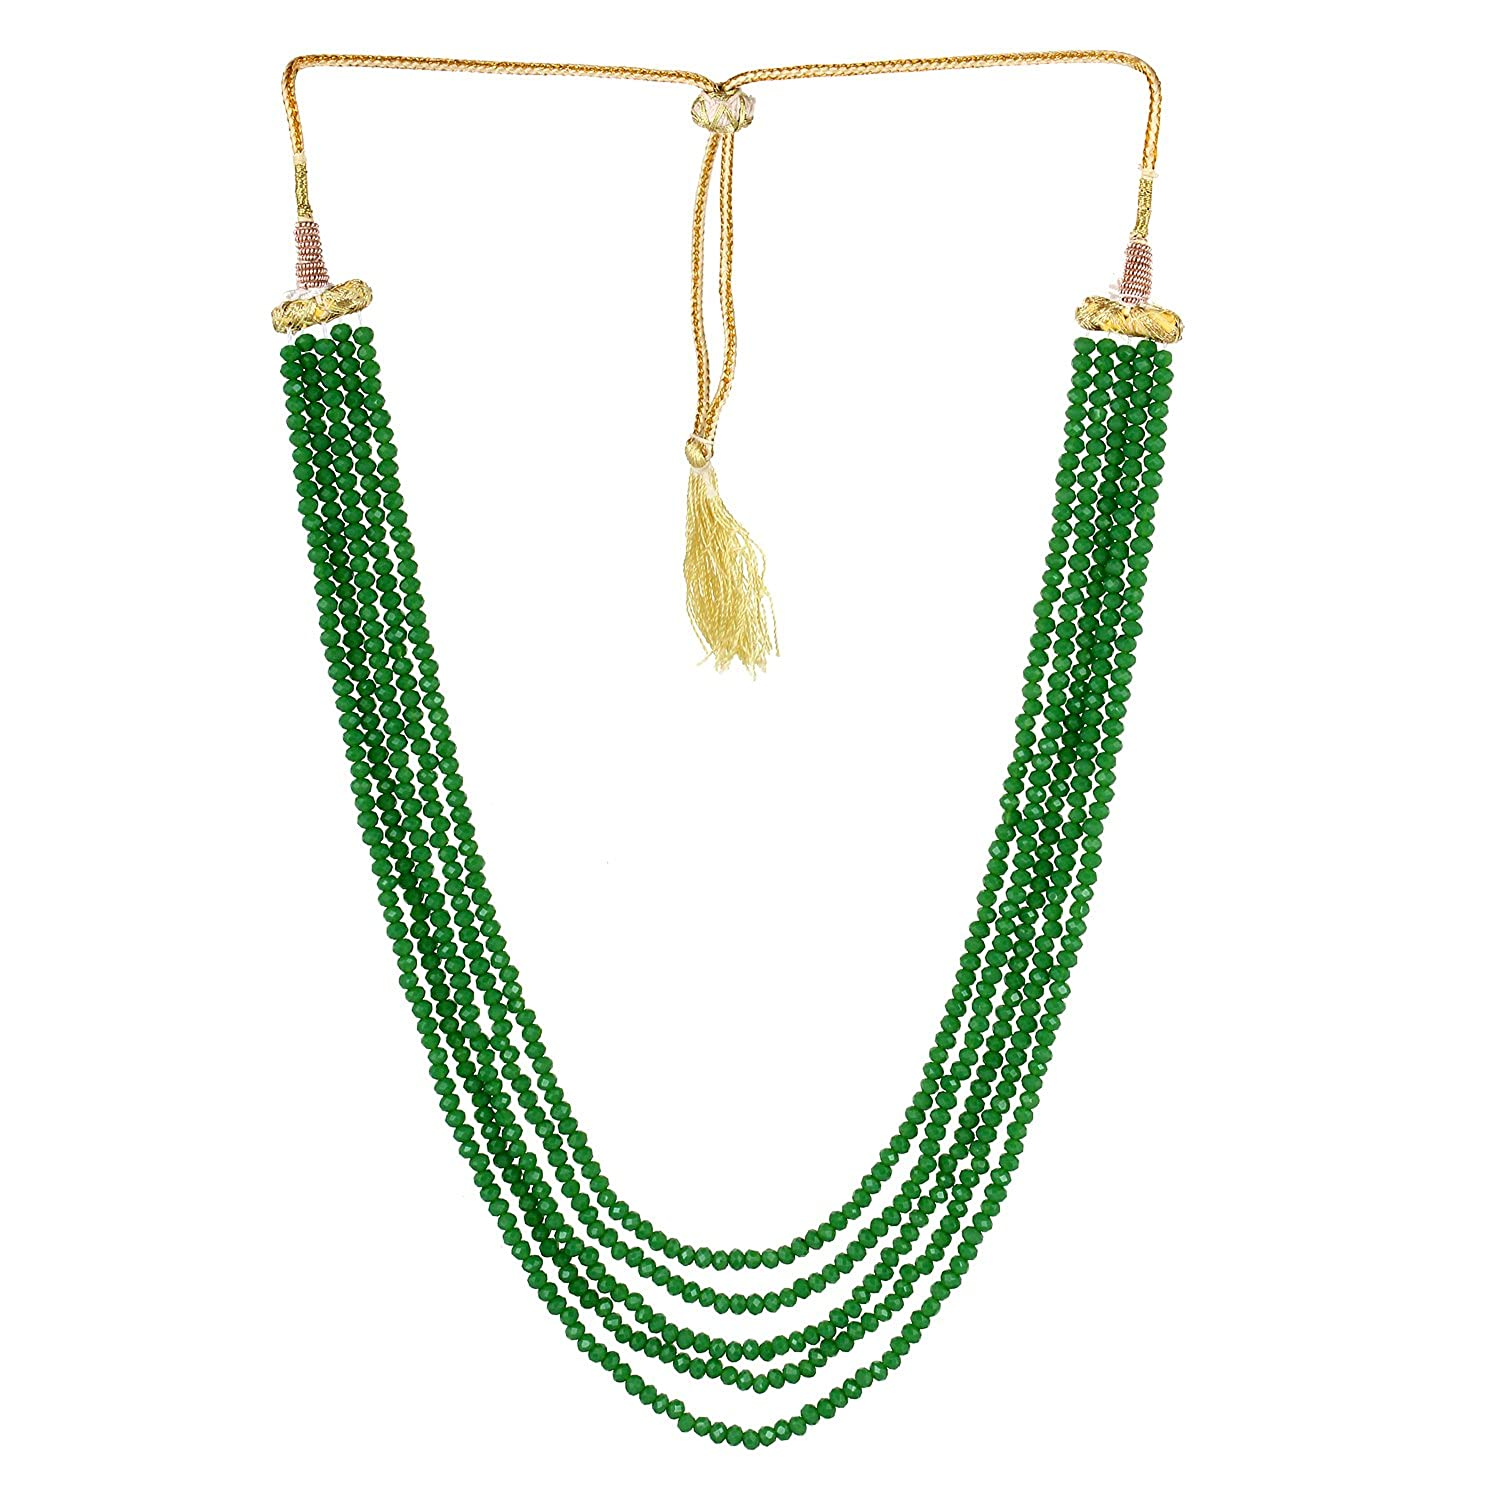 tassel browse ten jewellery in less boho is wishlist shop green product or the brown already handmade and crystal jewelry img necklaces necklace beads